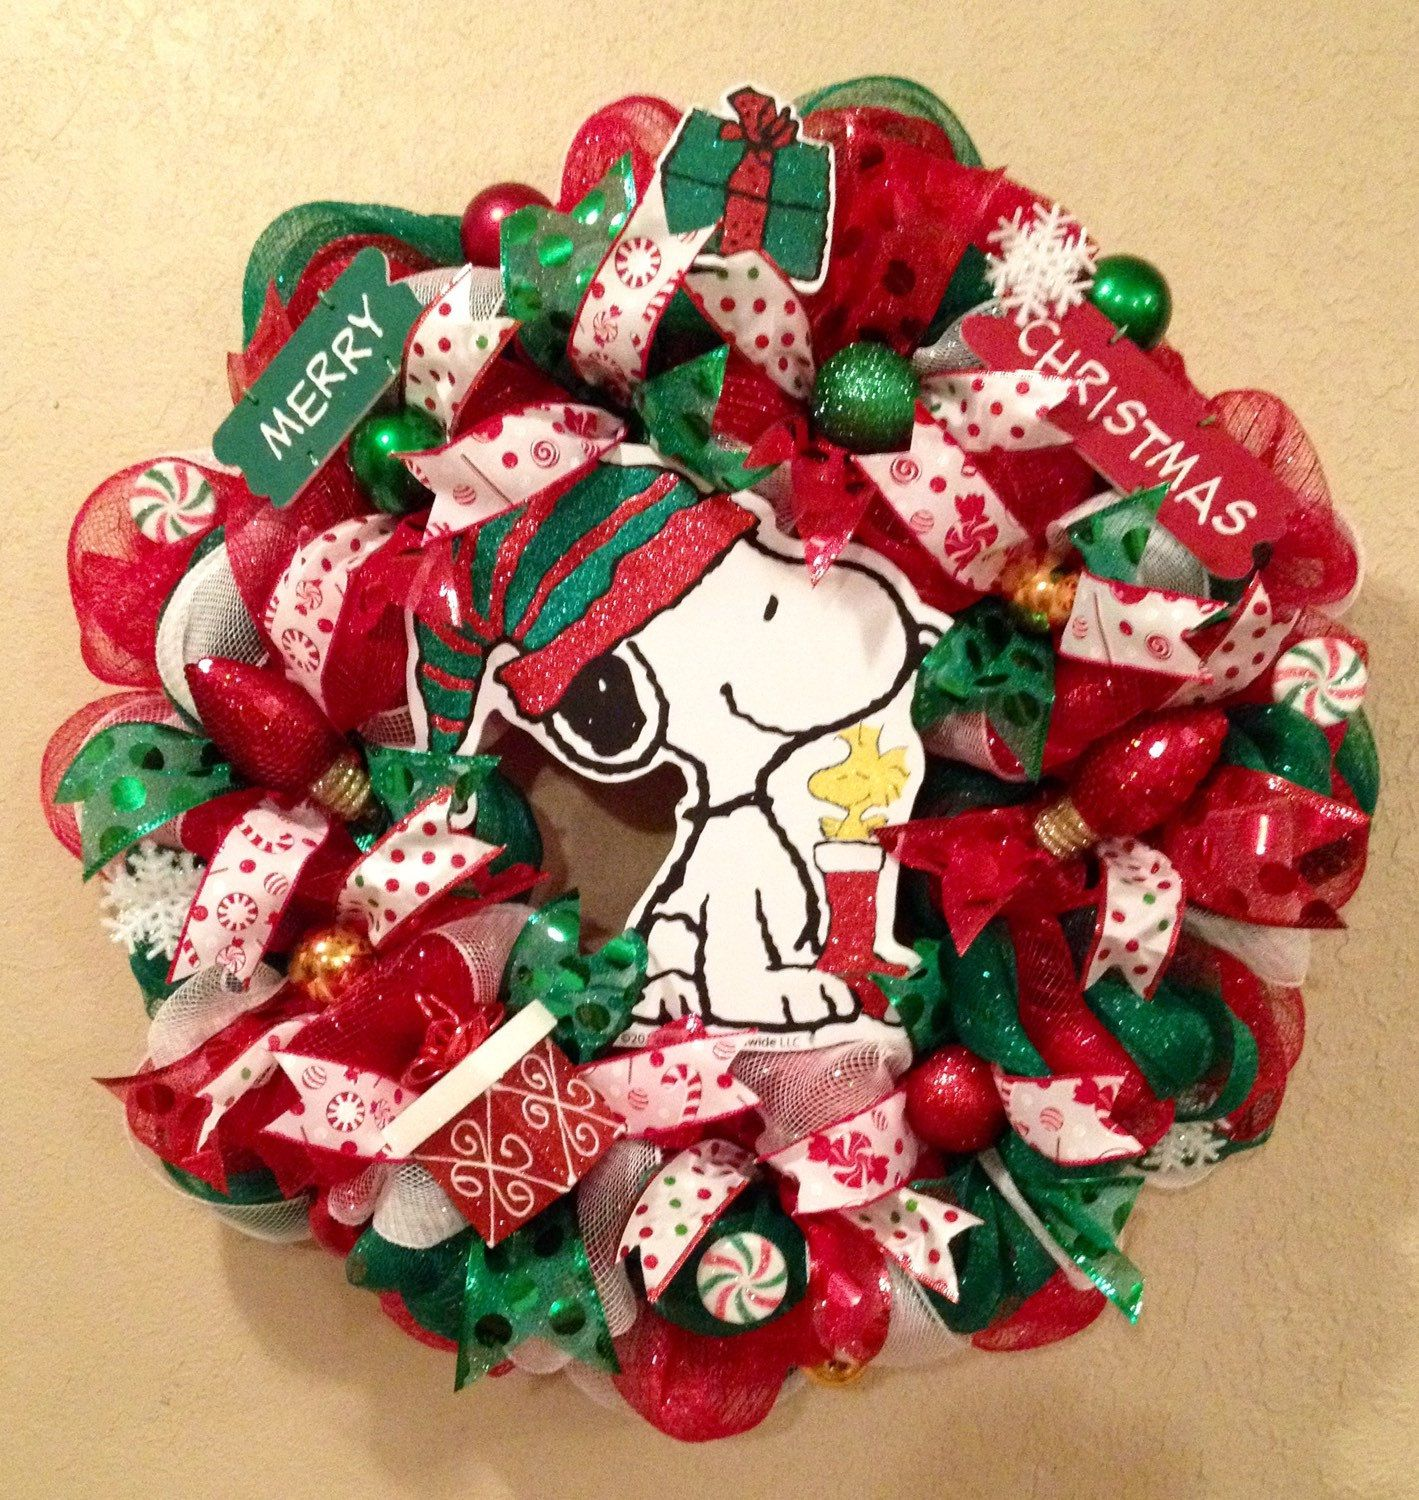 snoopy christmas wreath snoopy wreath snoopy decorations peanuts decor charlie brown decor snoopy and woodstock 7000 usd by wandndesigns